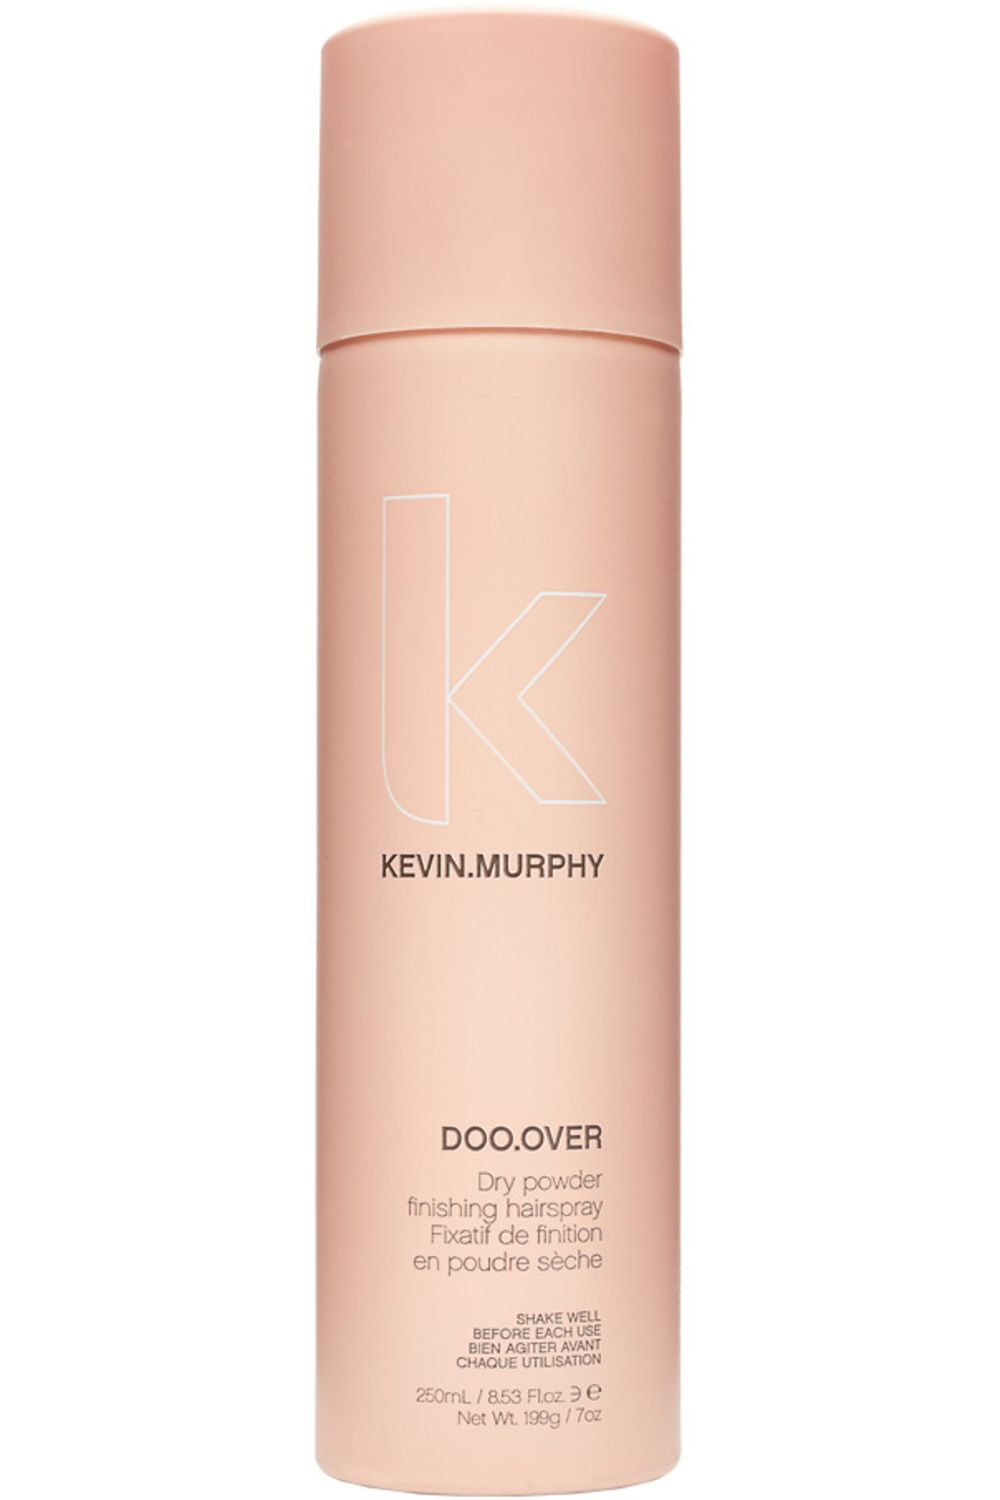 Blissim : KEVIN.MURPHY - Spray sec de finition DOO.OVER - Spray sec de finition DOO.OVER